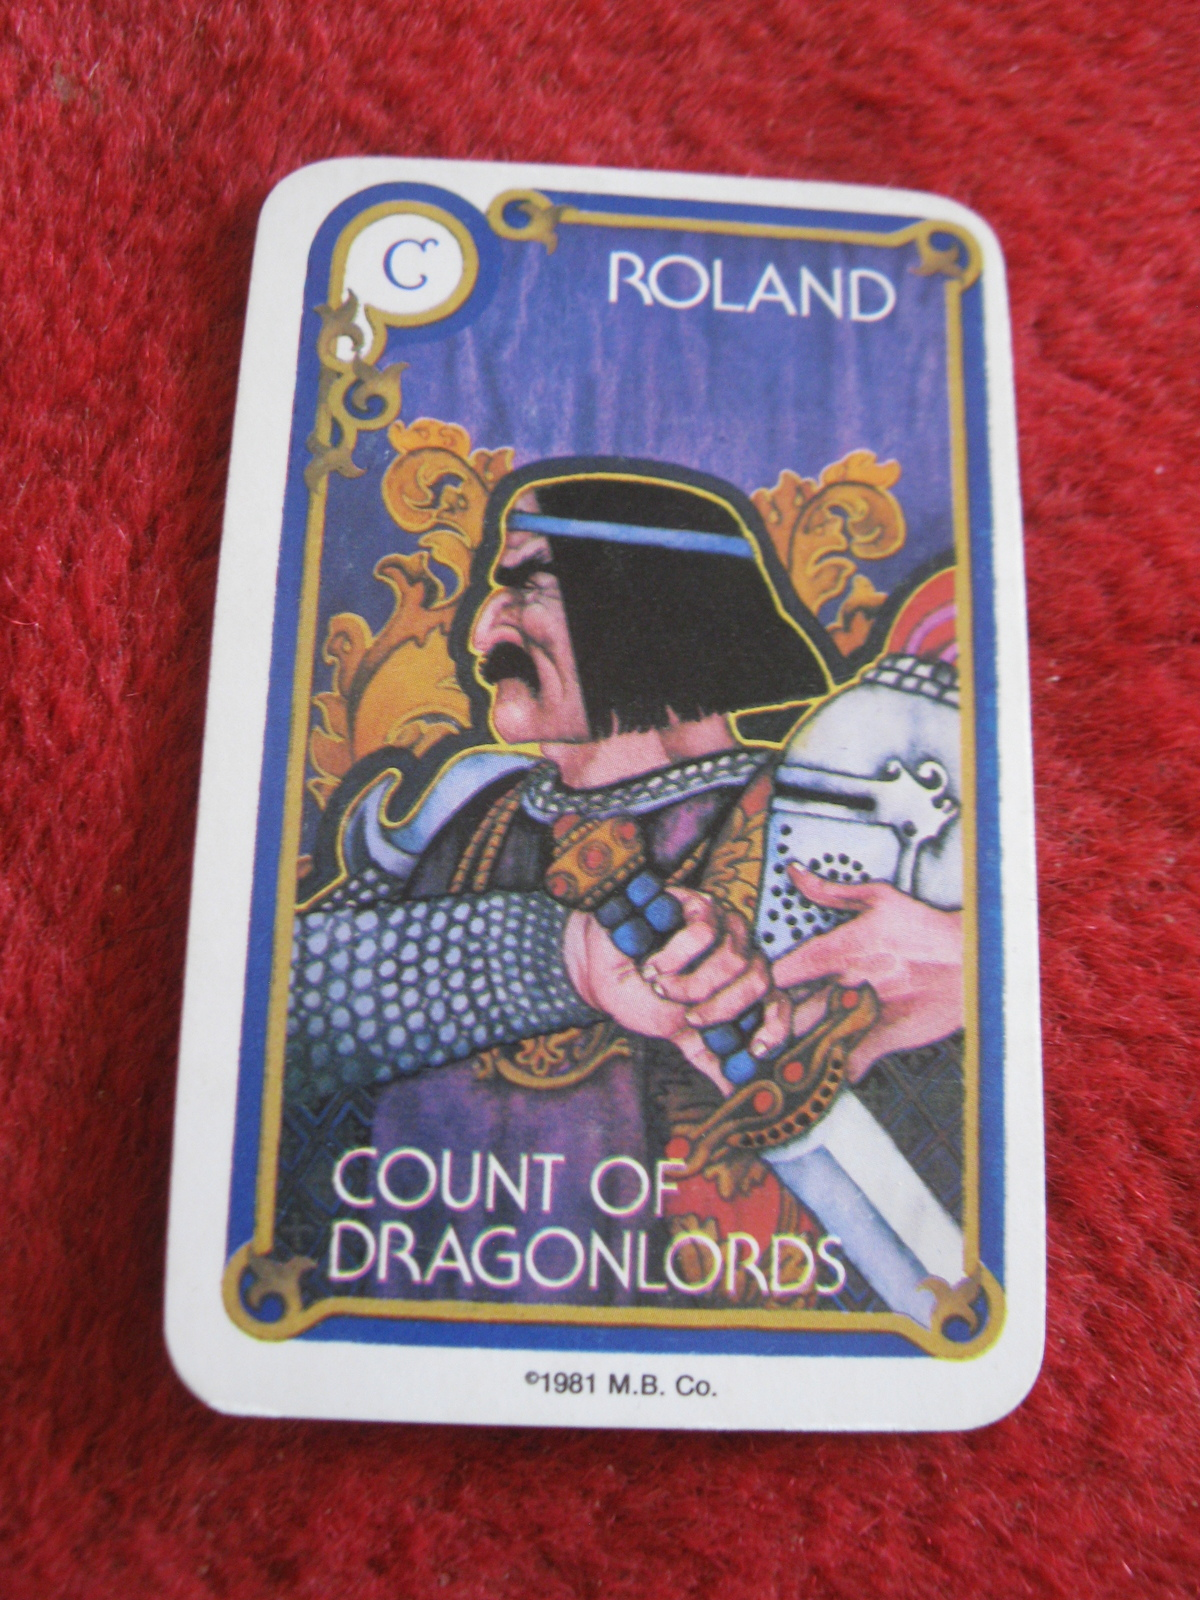 Primary image for 1981 DragonMaster Board game playing card: Roland, Count of Dragonlords